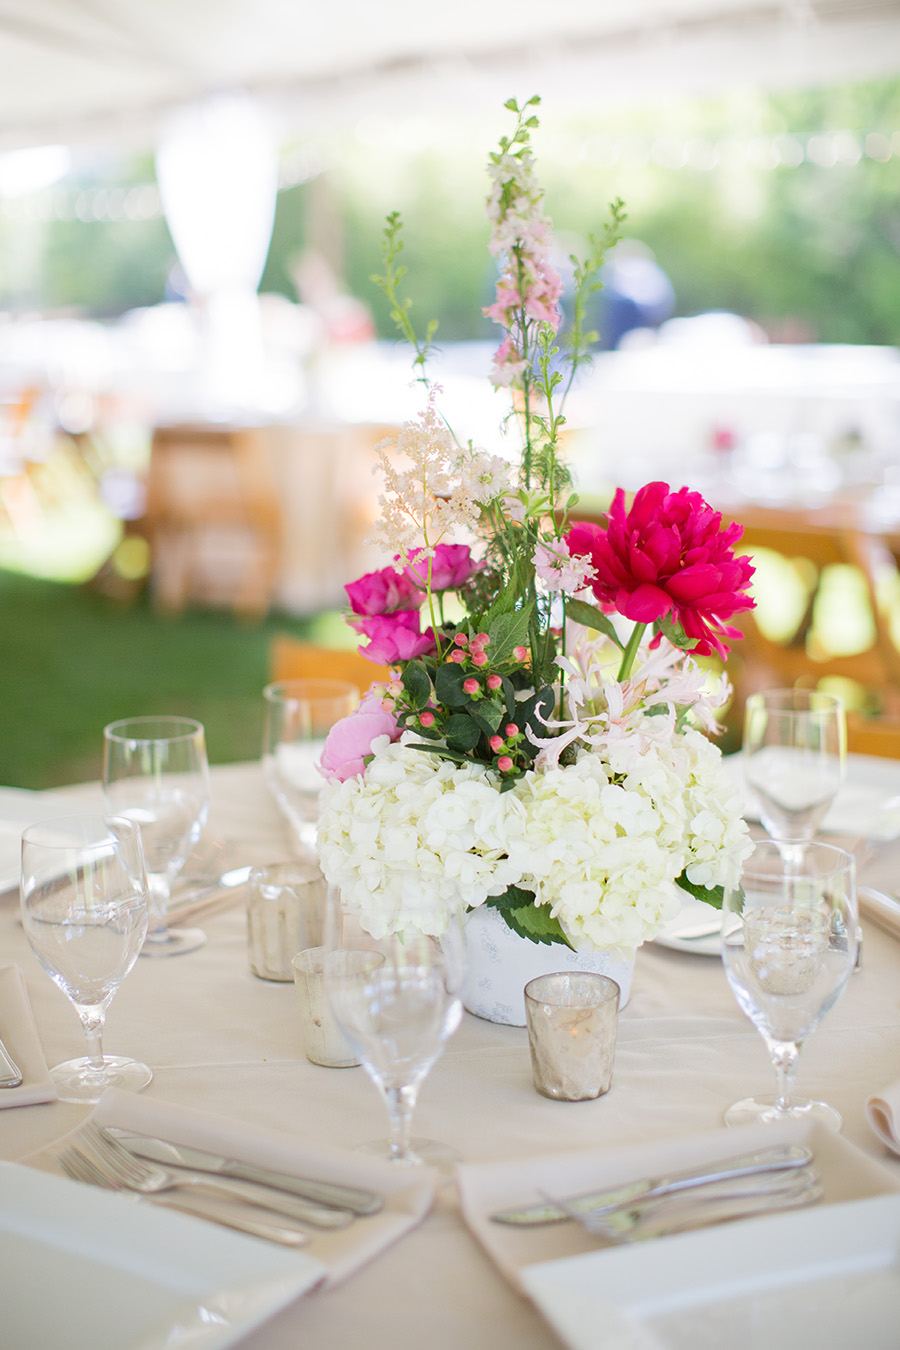 wedding_flowers4.jpg